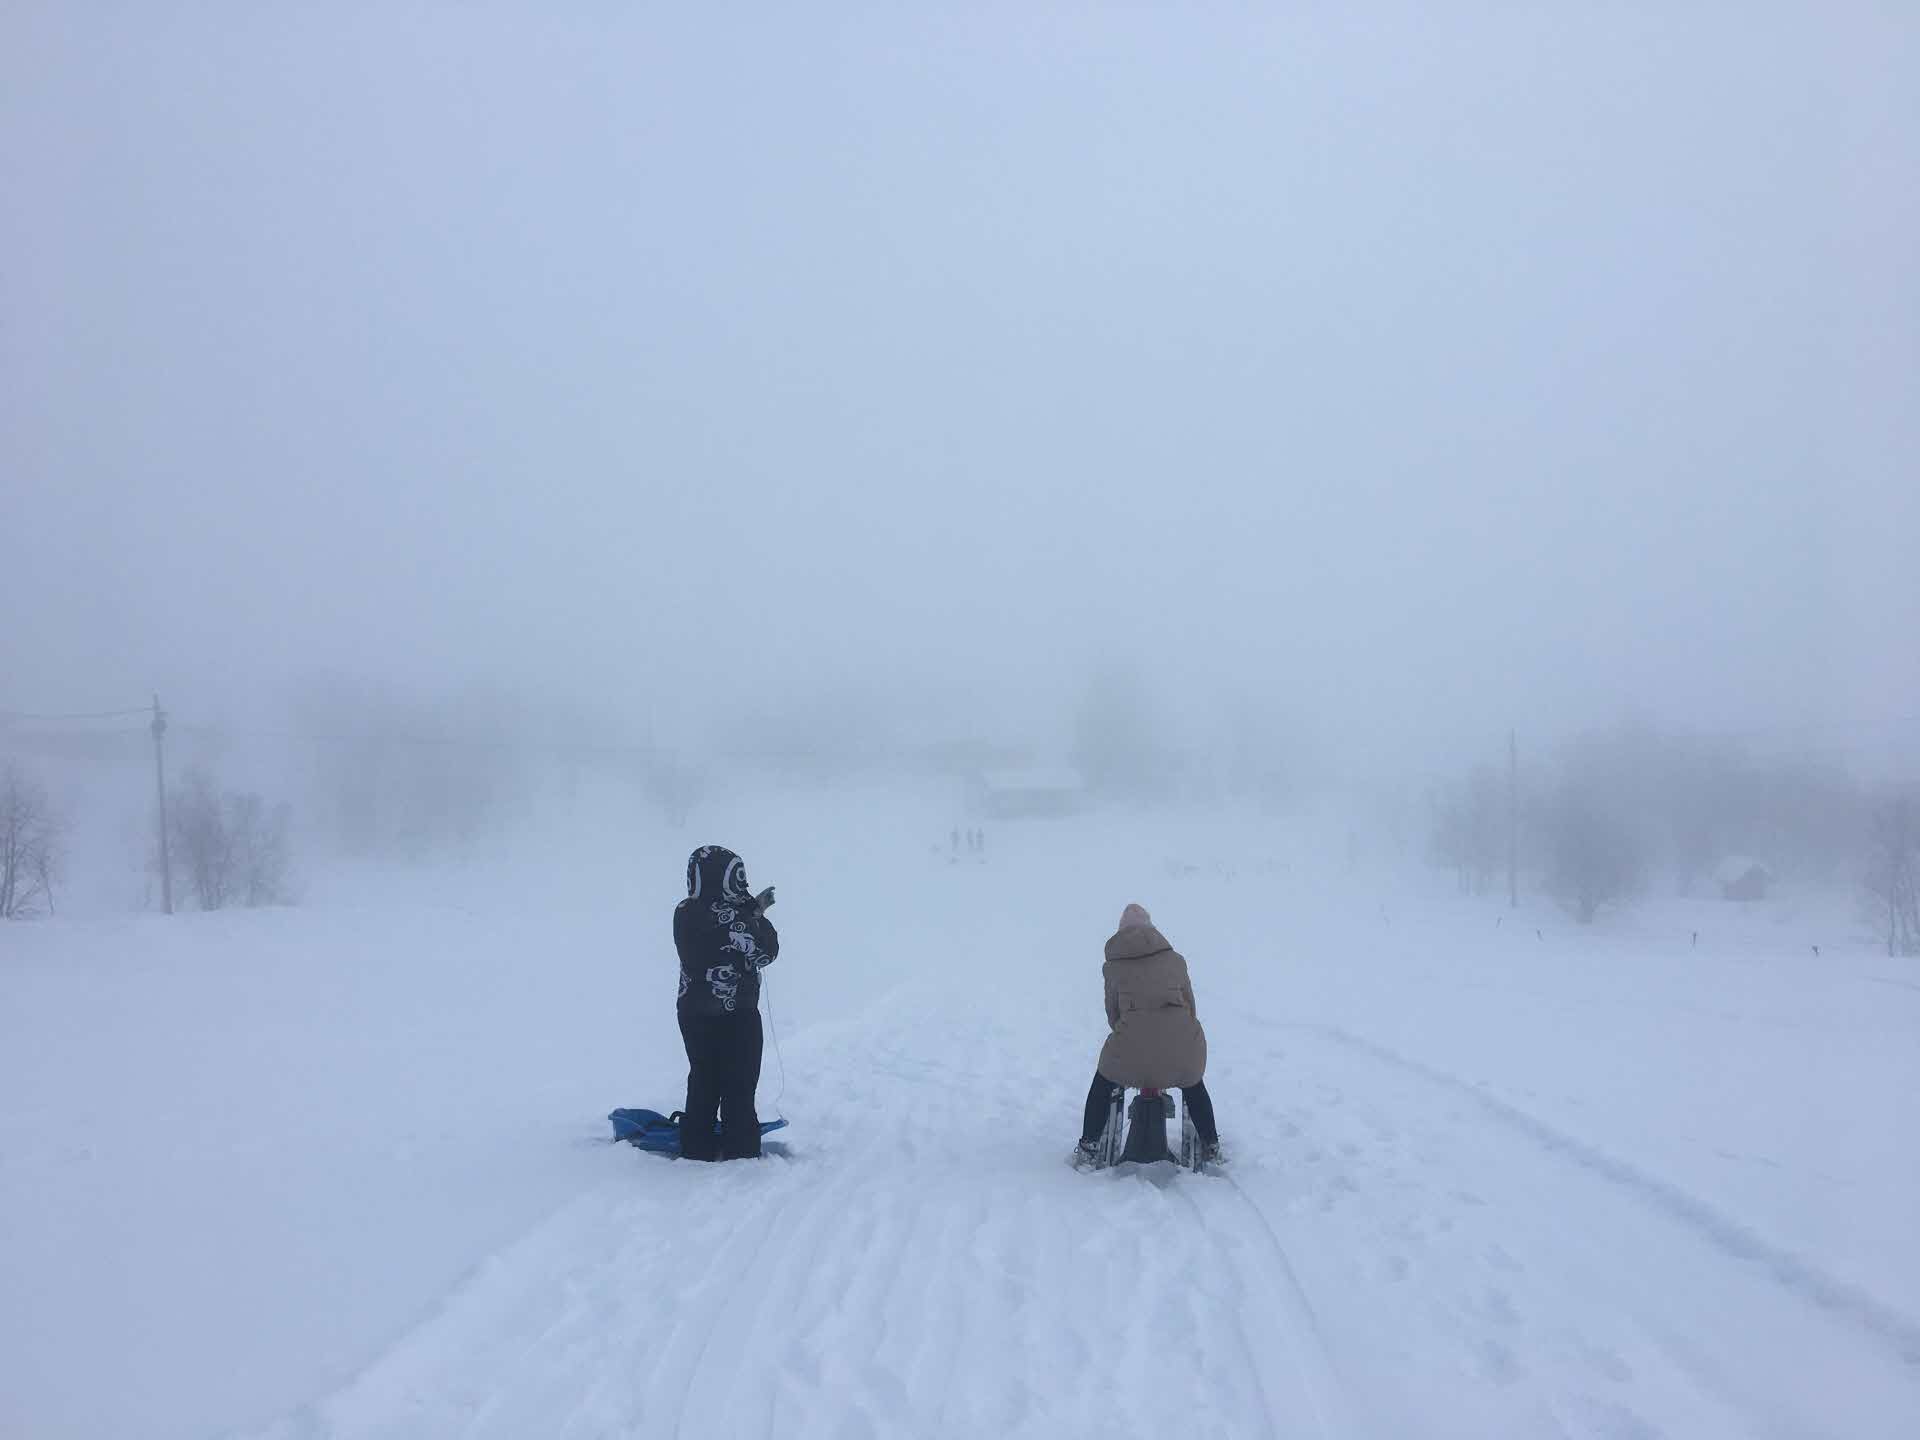 Two people getting ready for snow sleding on top of ski slope on a misty day